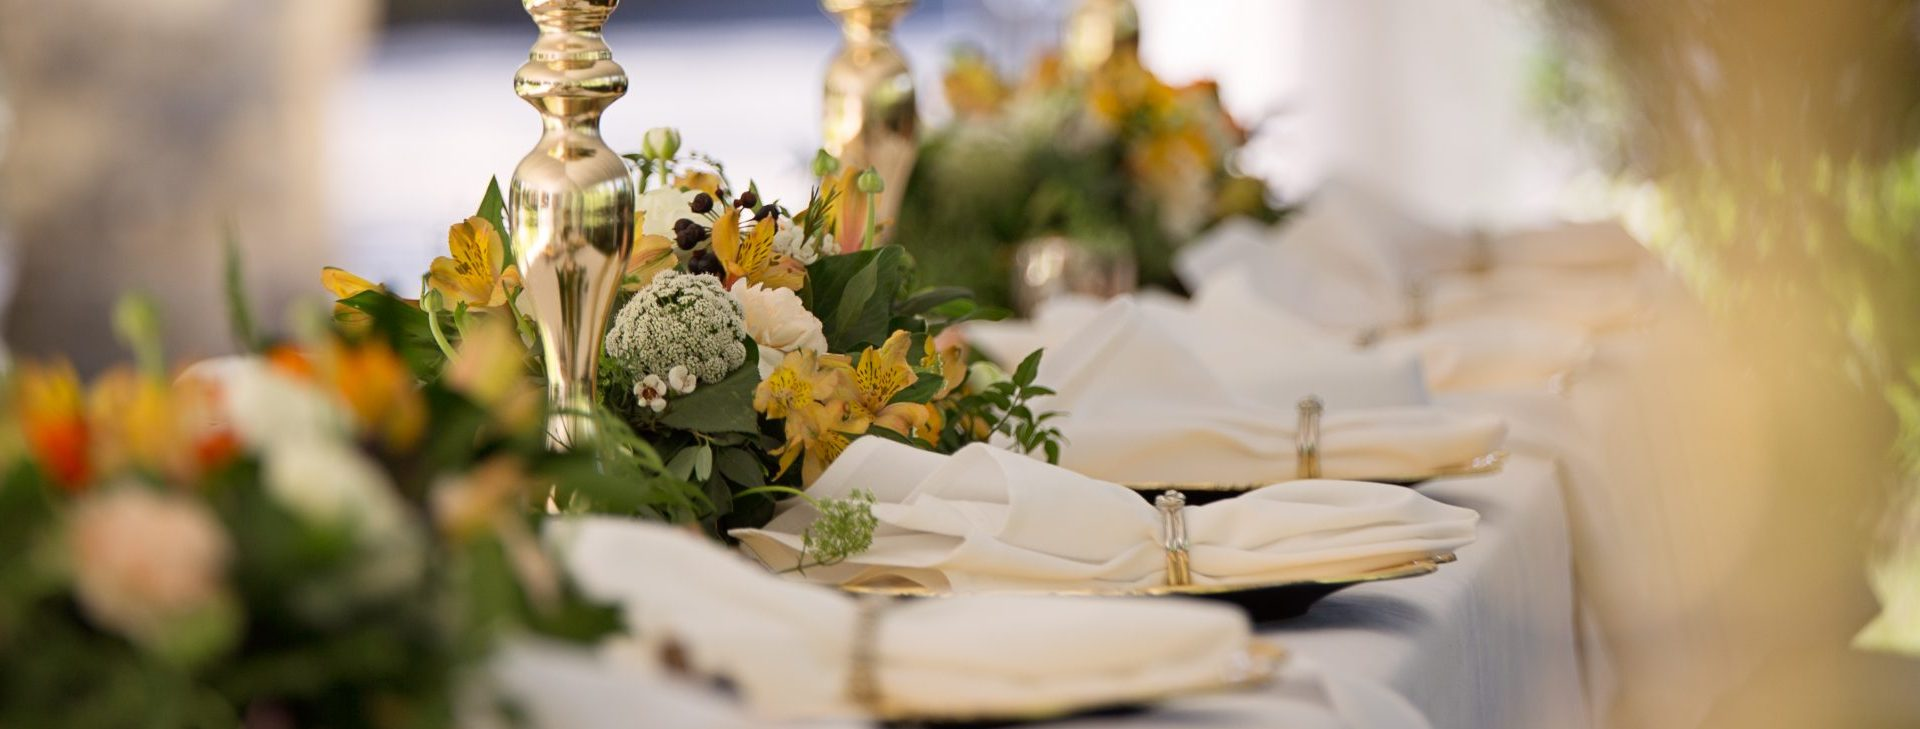 Wedding Dinner Table Details